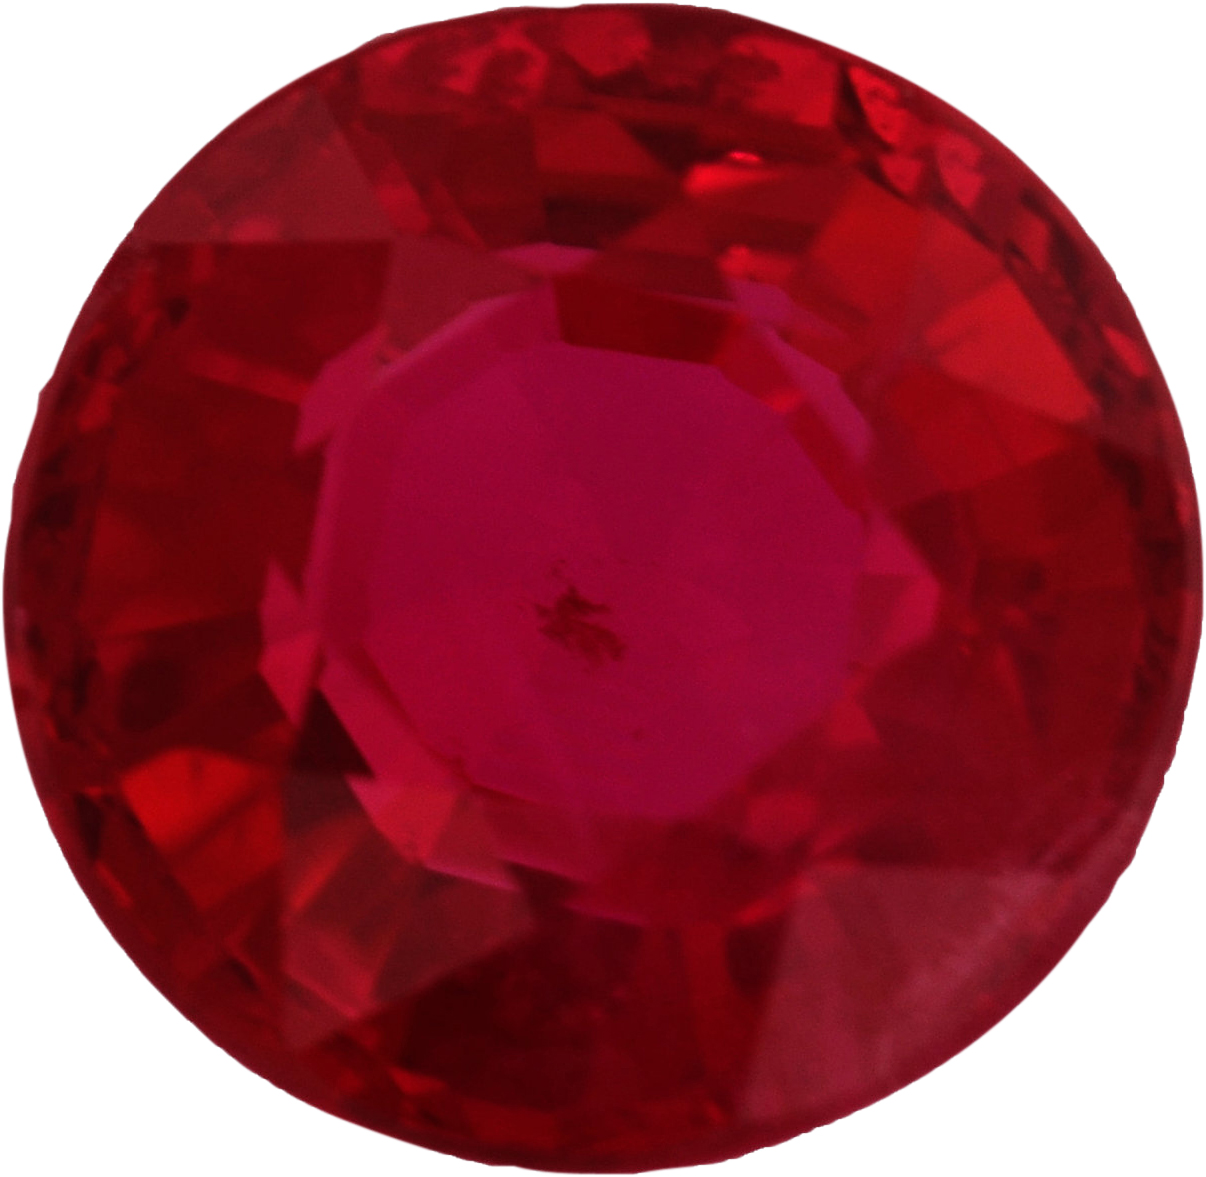 Lovely Round Cut Loose Ruby Gem, Vivid  Red Color, 6.01 mm, 1.09 carats